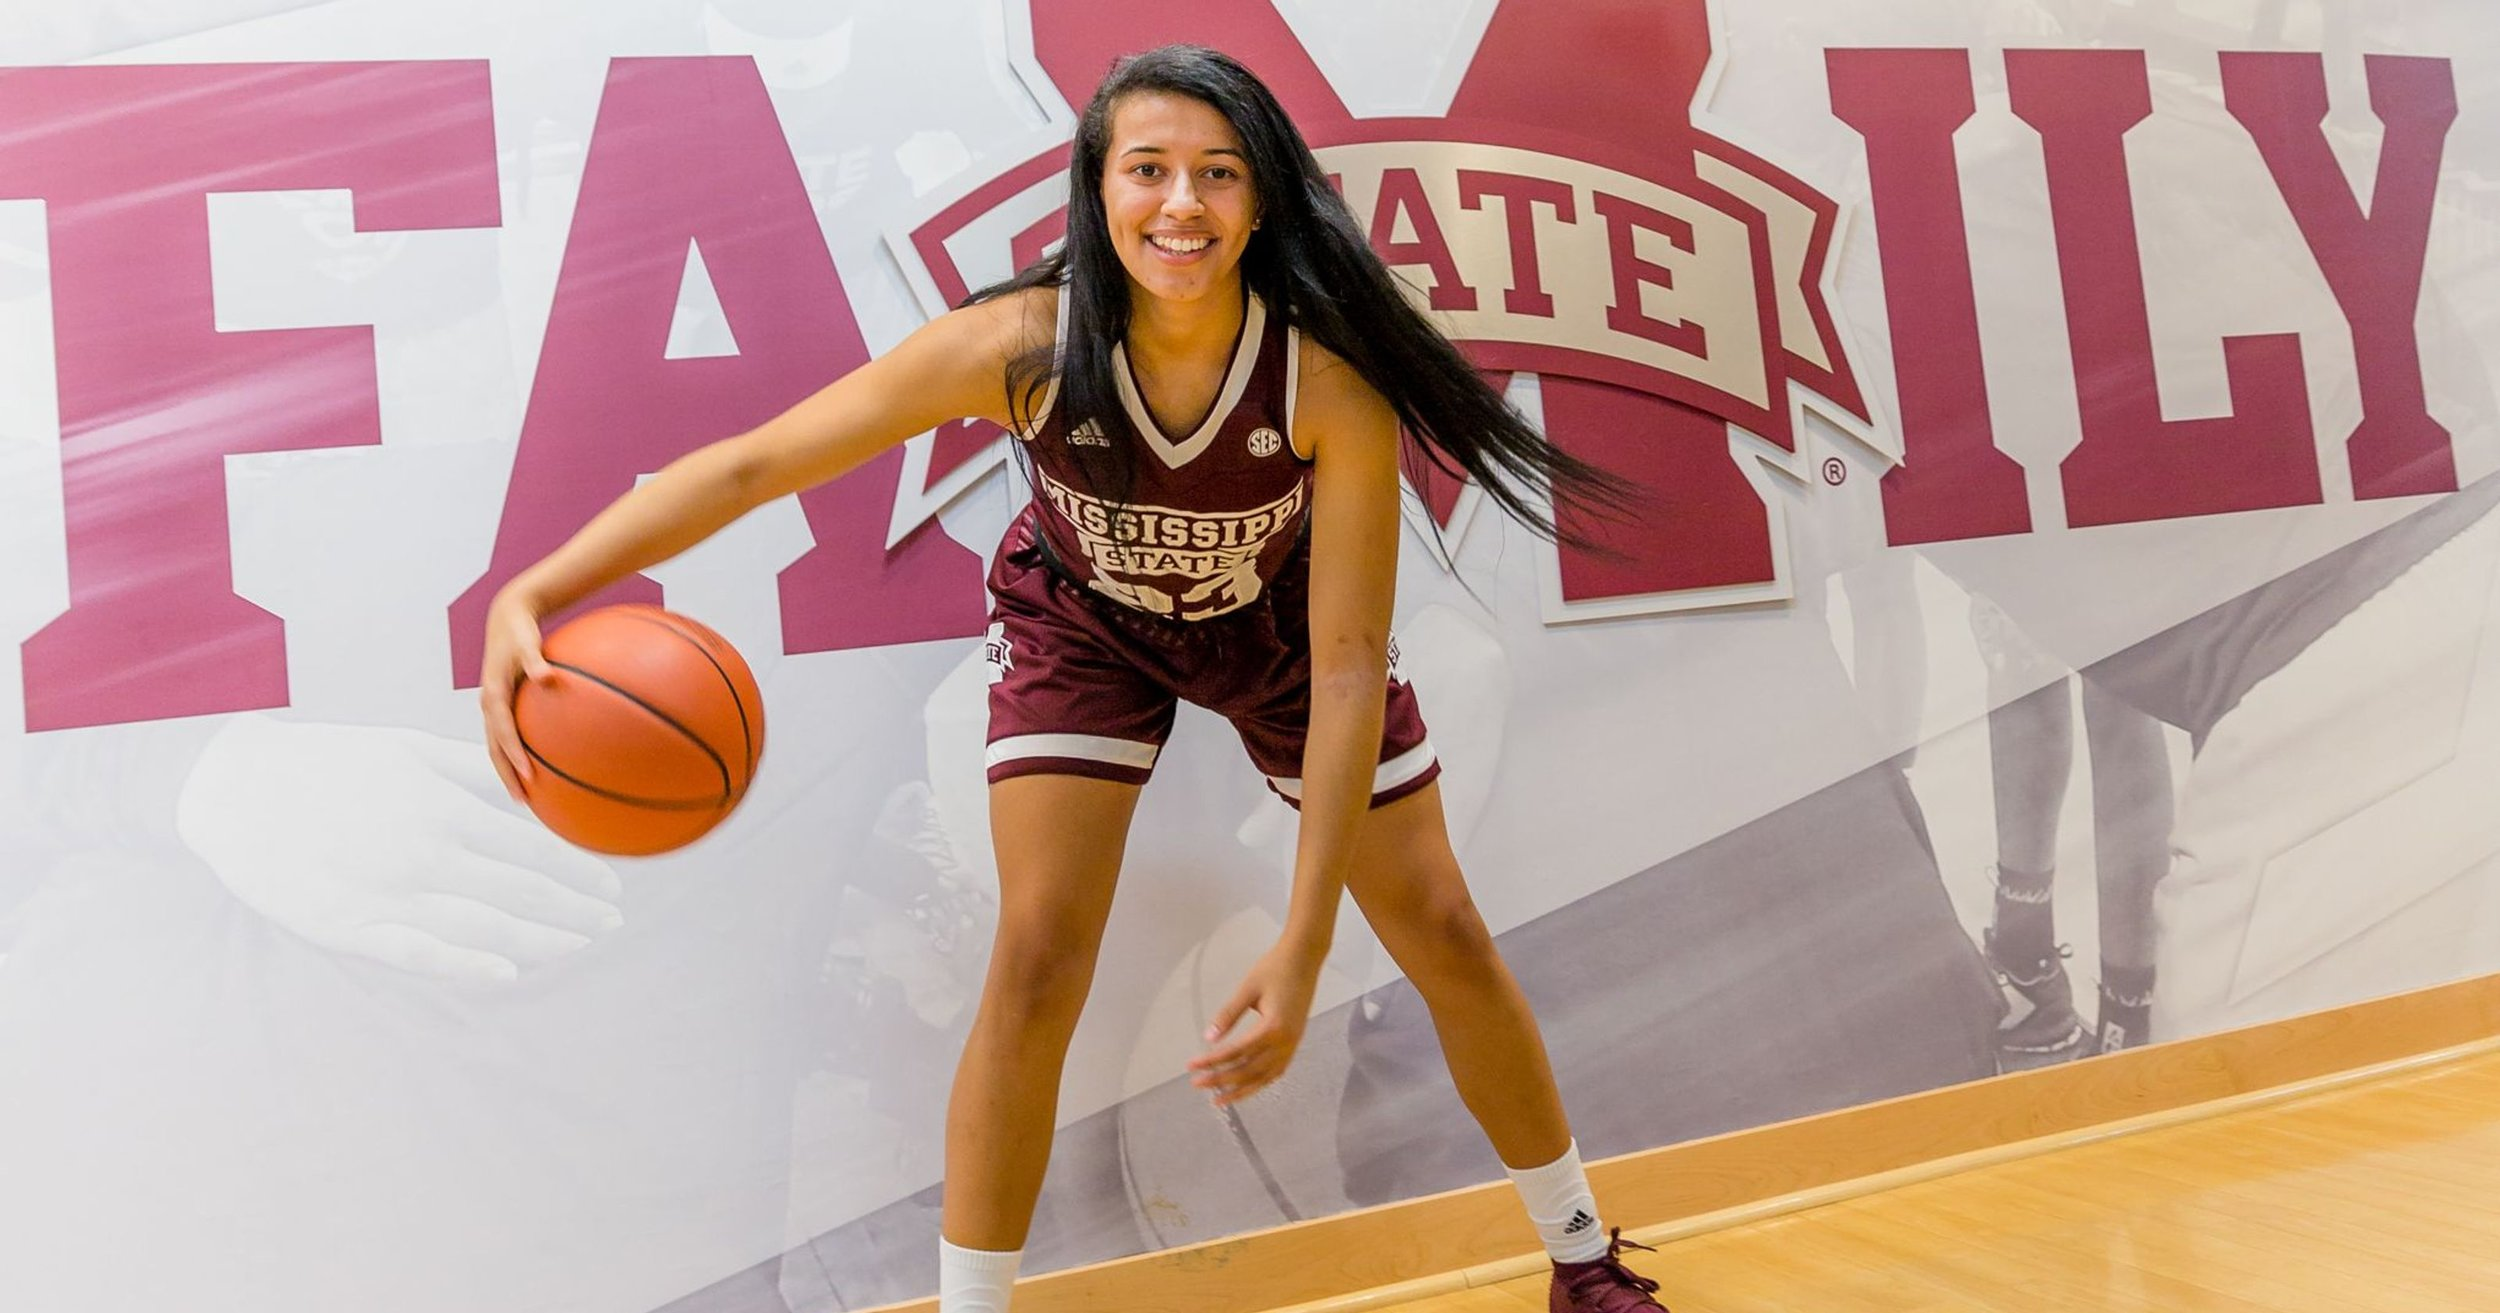 Ossining's Andra Espinoza-Hunter, who is heading to UConn, reflects on her high school basketball career, which includes three Gold Balls and one state championship. Seth Harrison/lohud